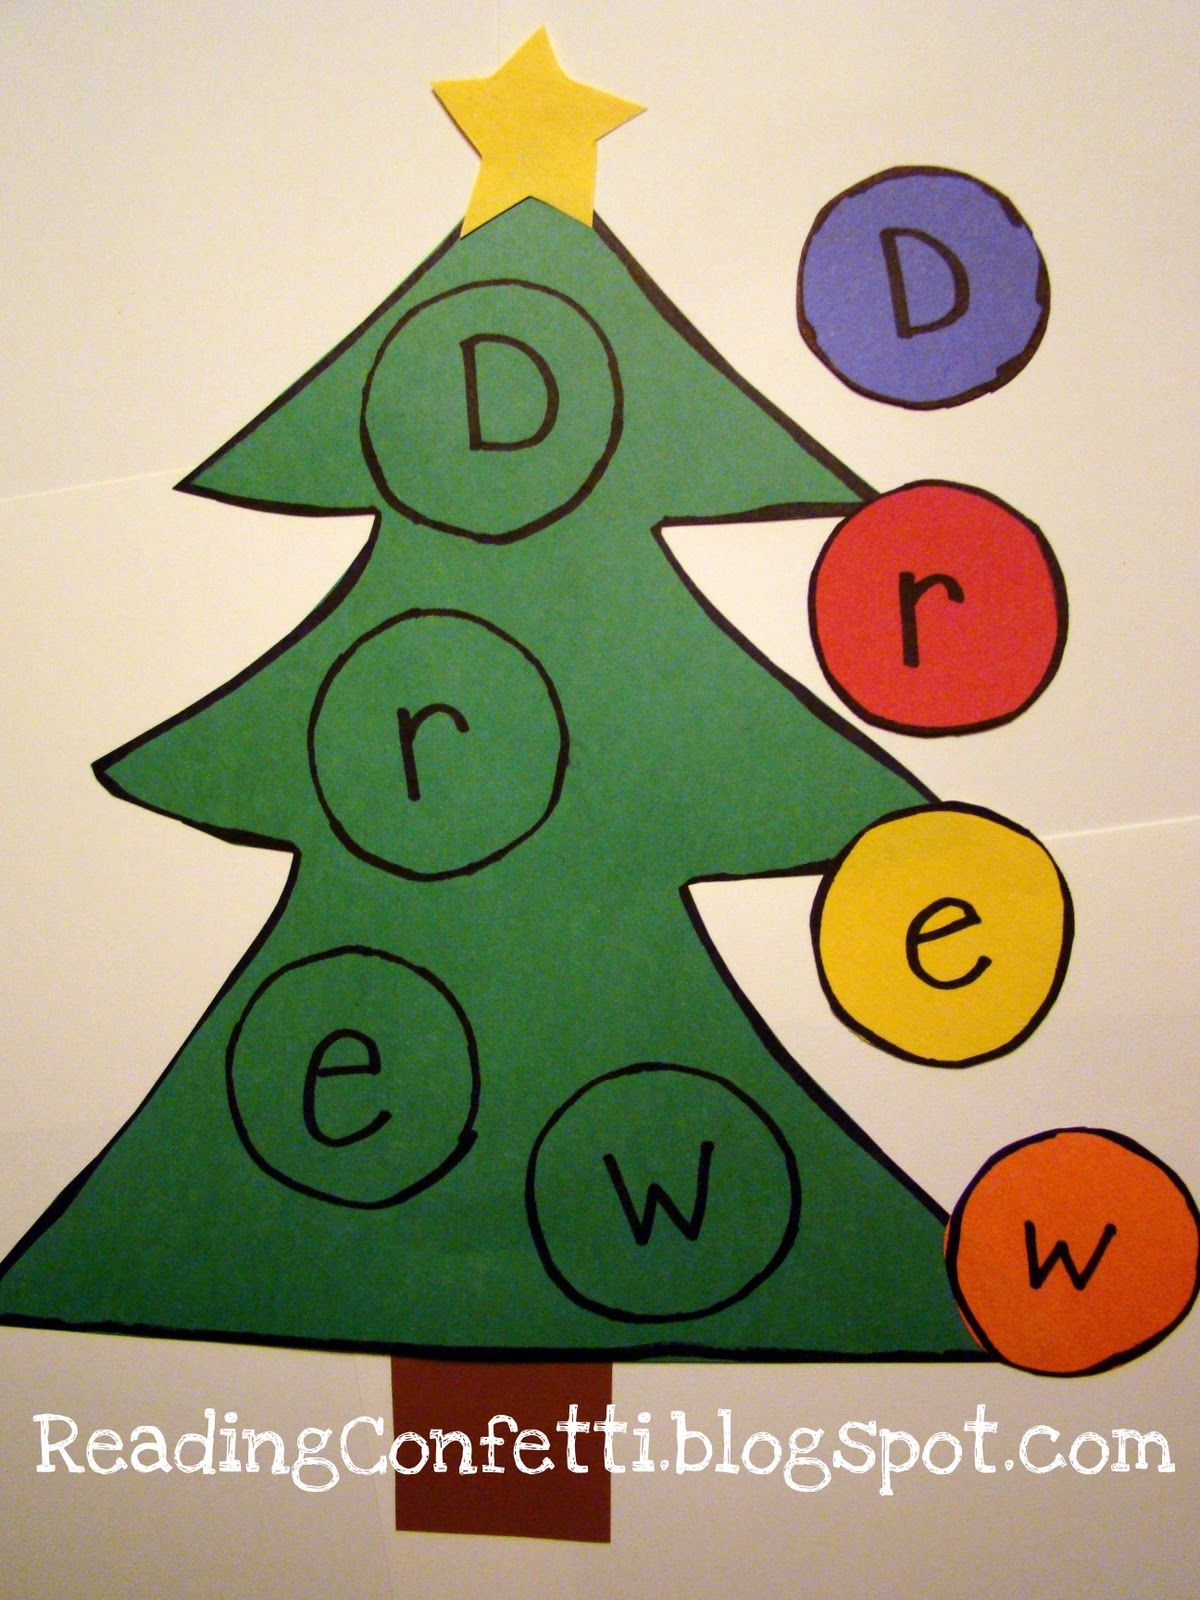 Reading Confetti Name Spelling With Tree And Ornaments